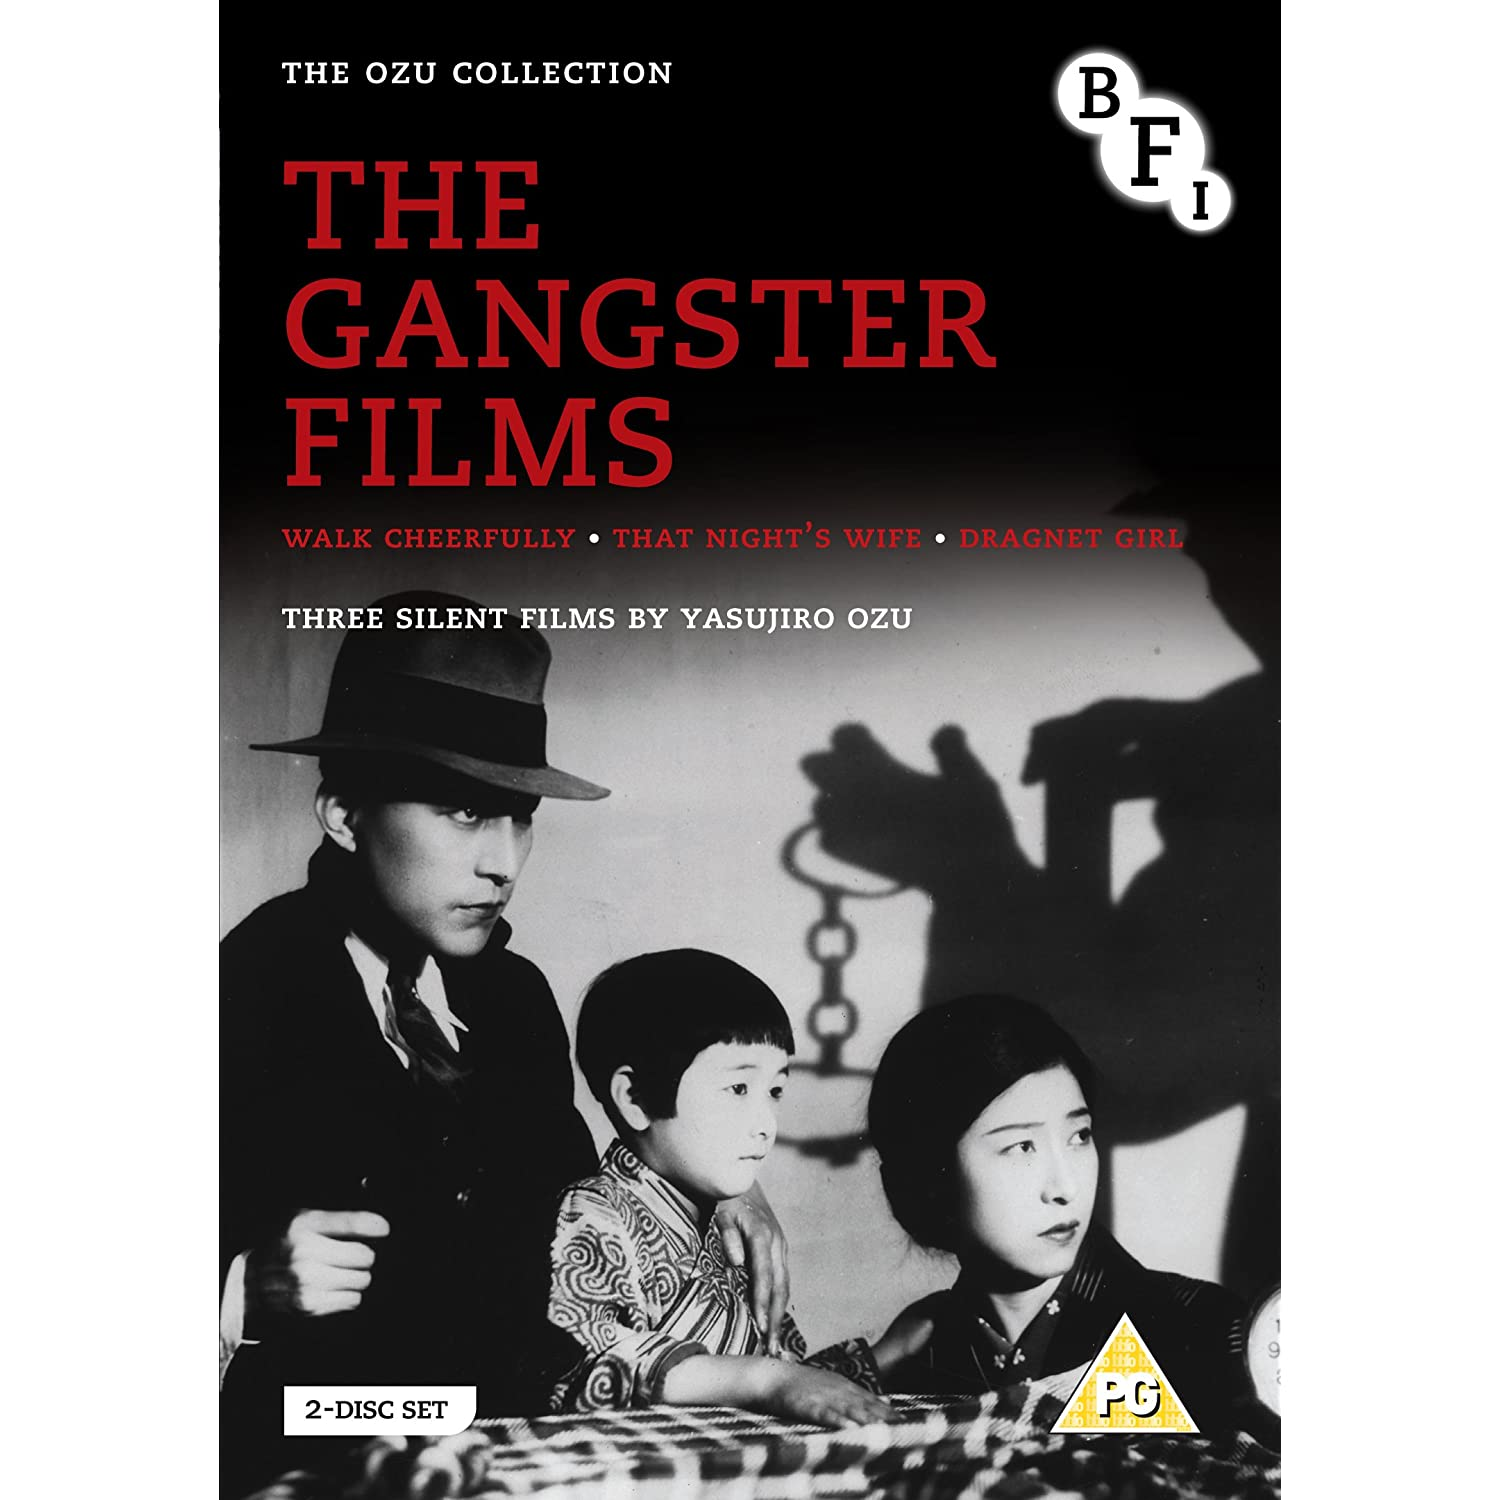  Ozu Collection  the Gangster Films